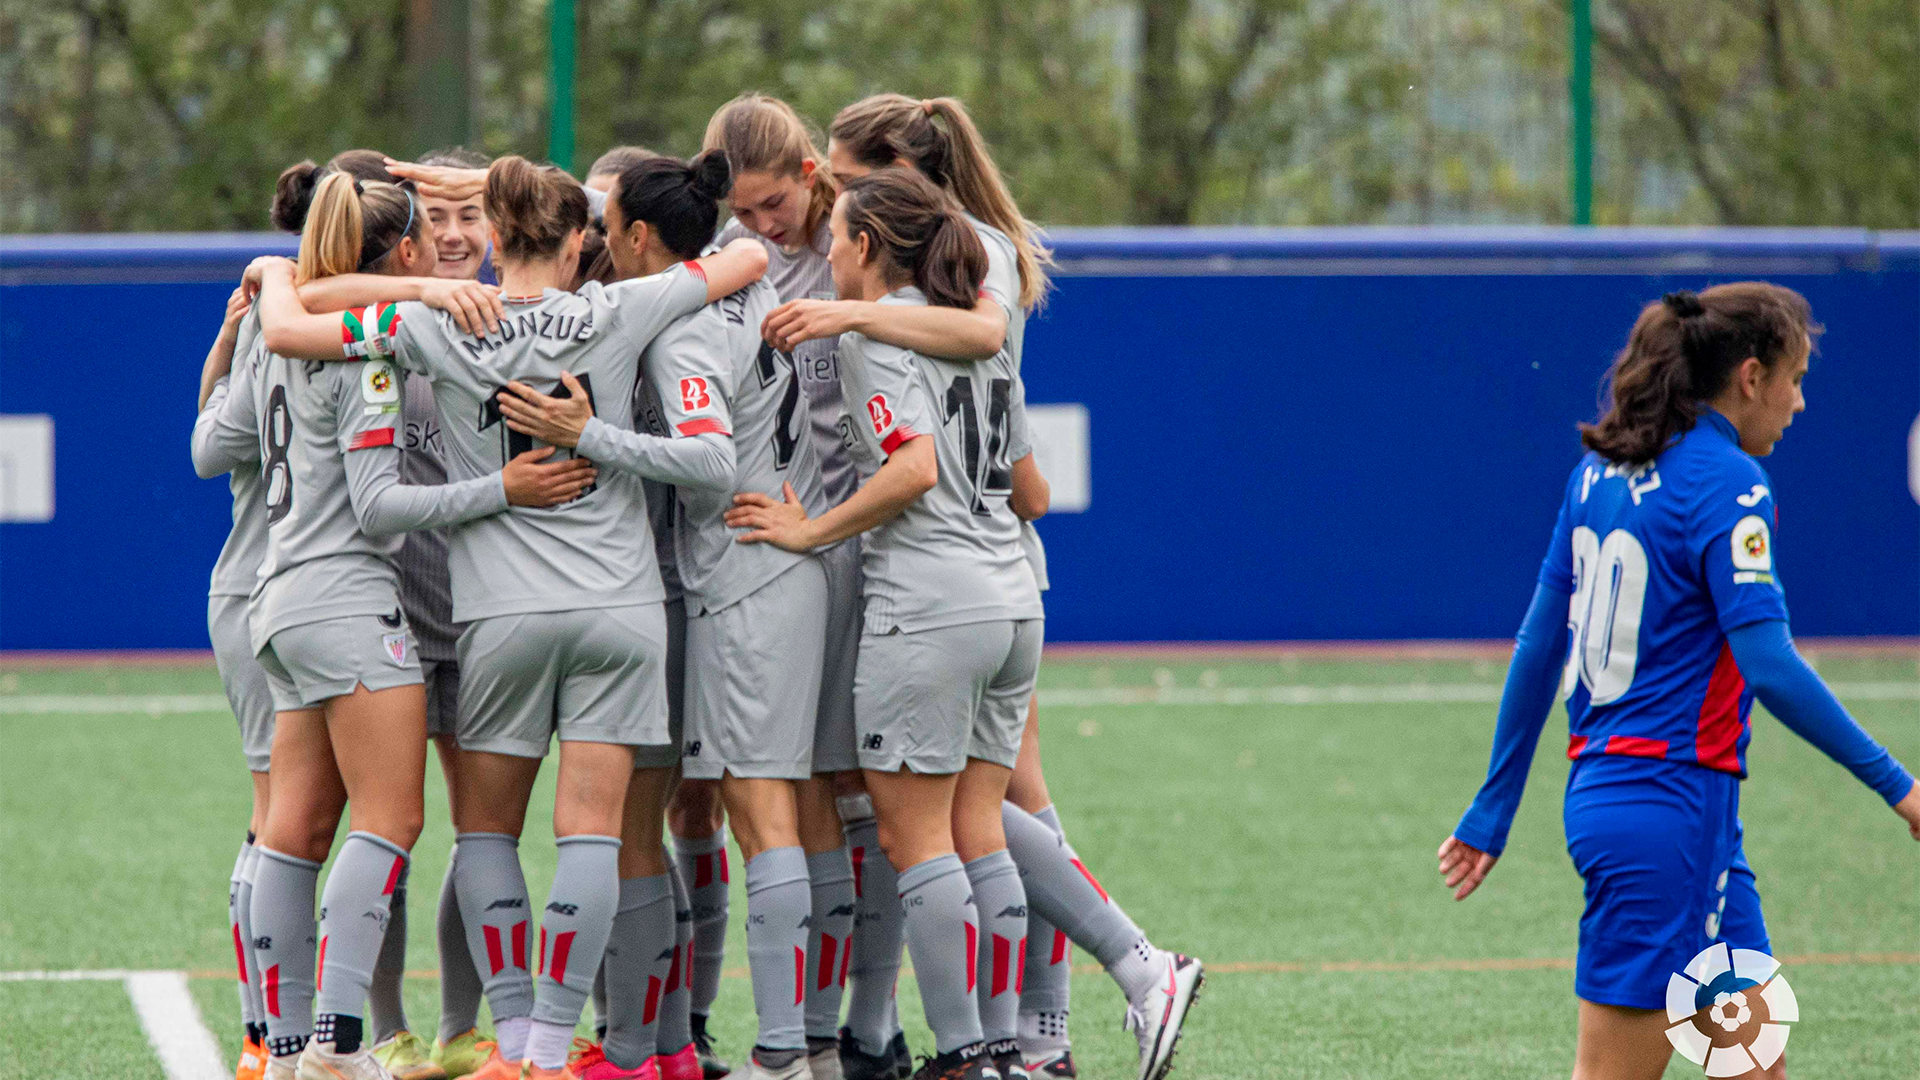 Dominant win for Athletic Club Women against SD Eibar